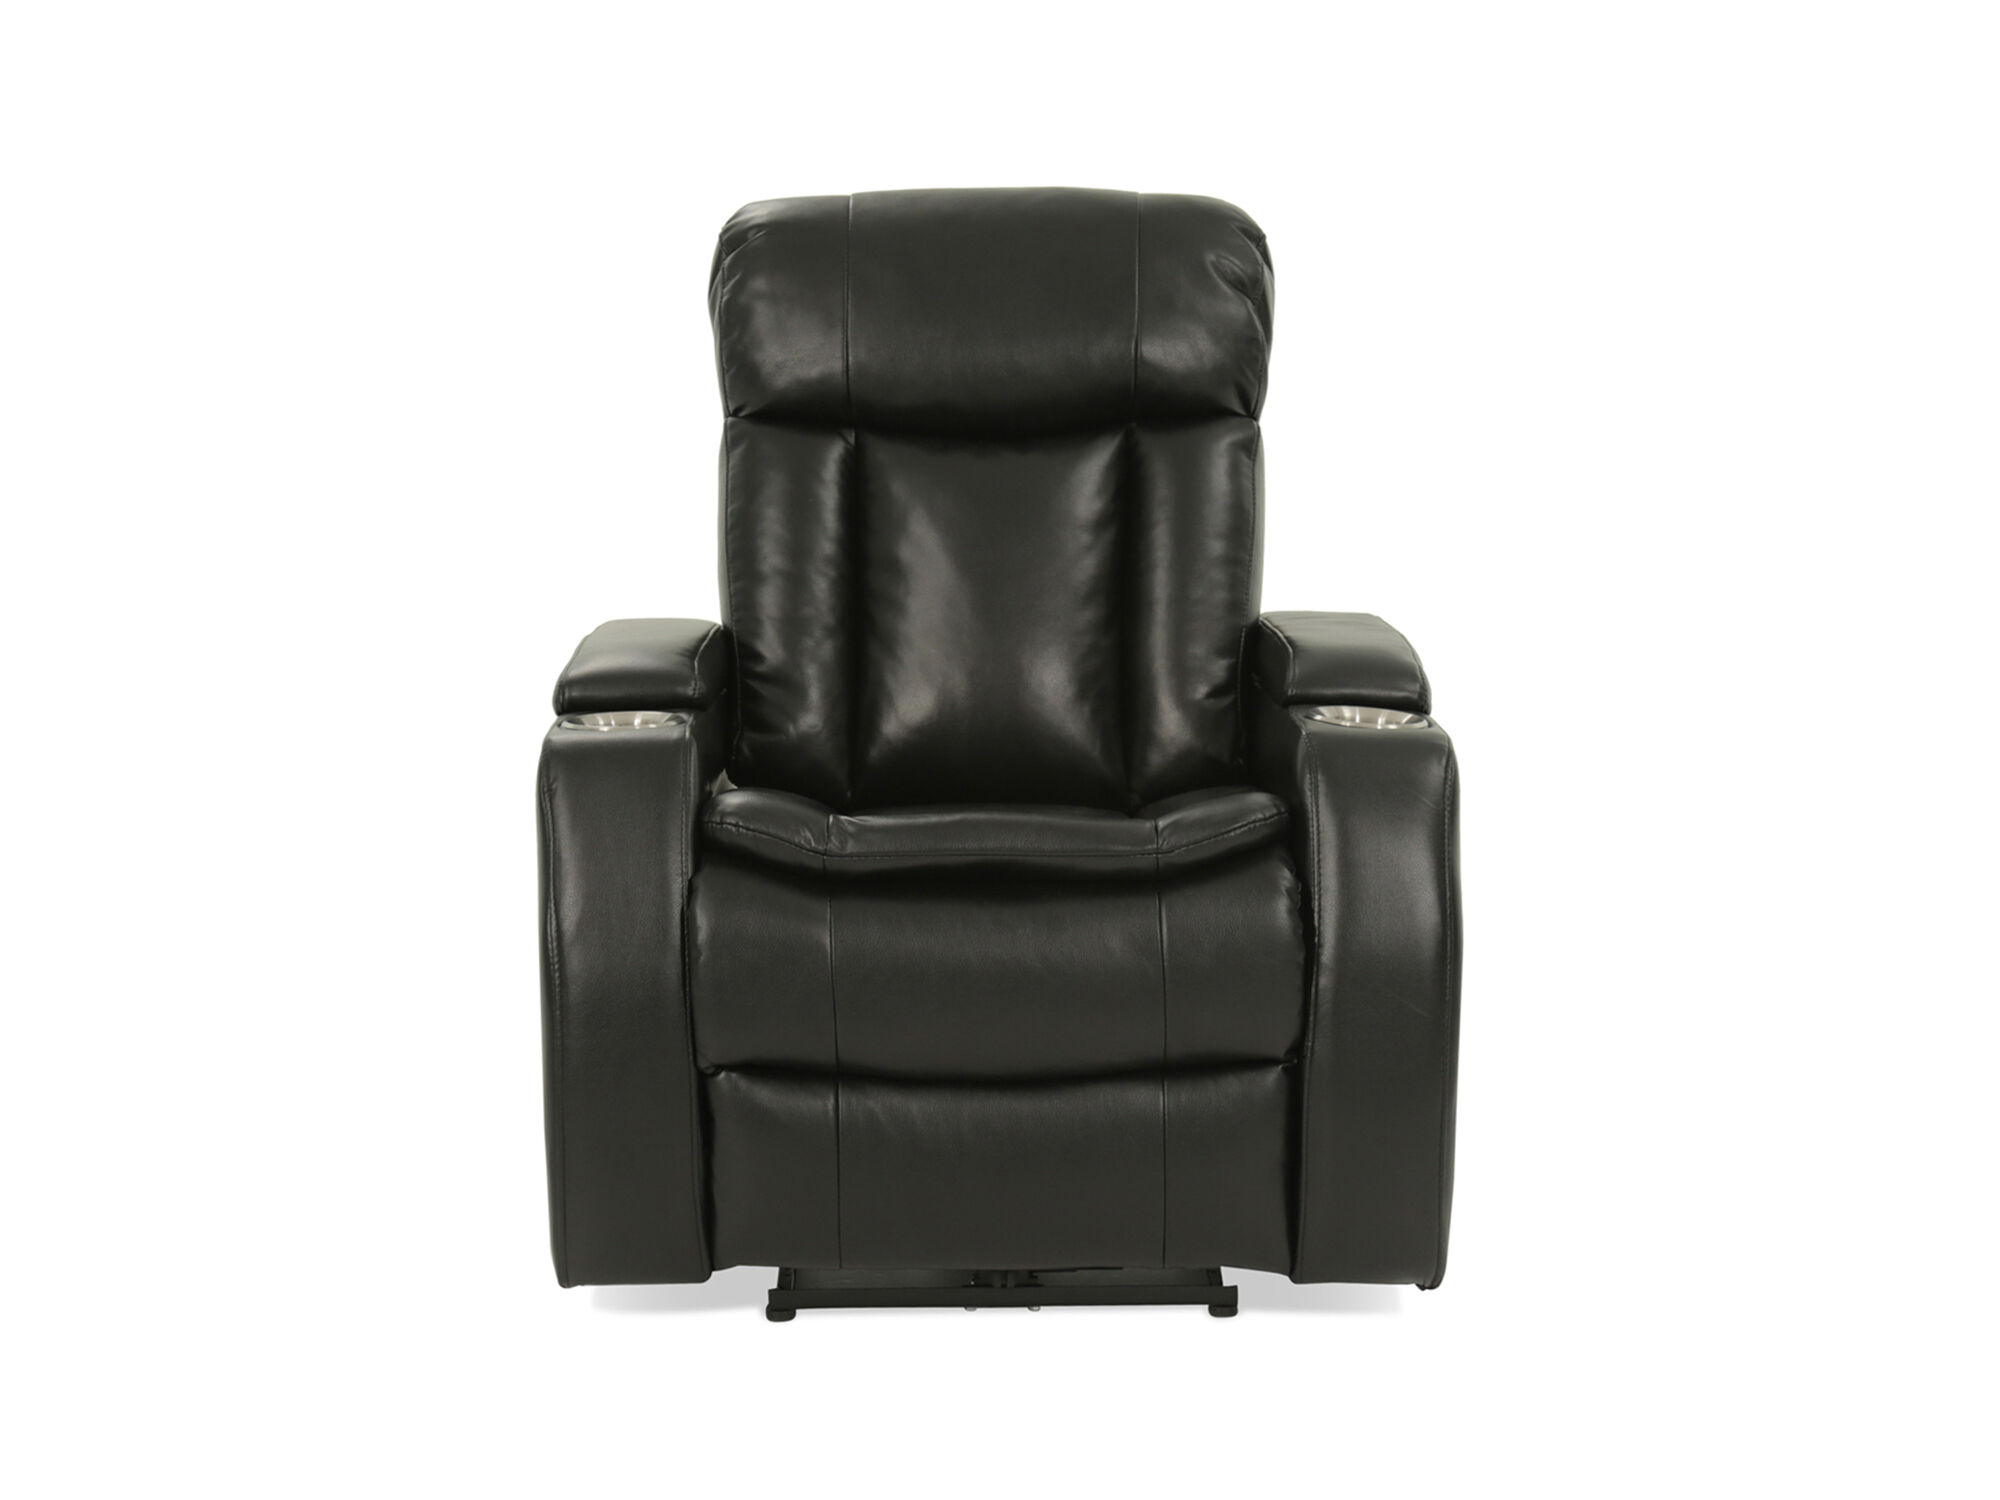 Prime Resources Galaxy Power Recliner  sc 1 st  Mathis Brothers & Prime Resources Galaxy Power Recliner | Mathis Brothers Furniture islam-shia.org